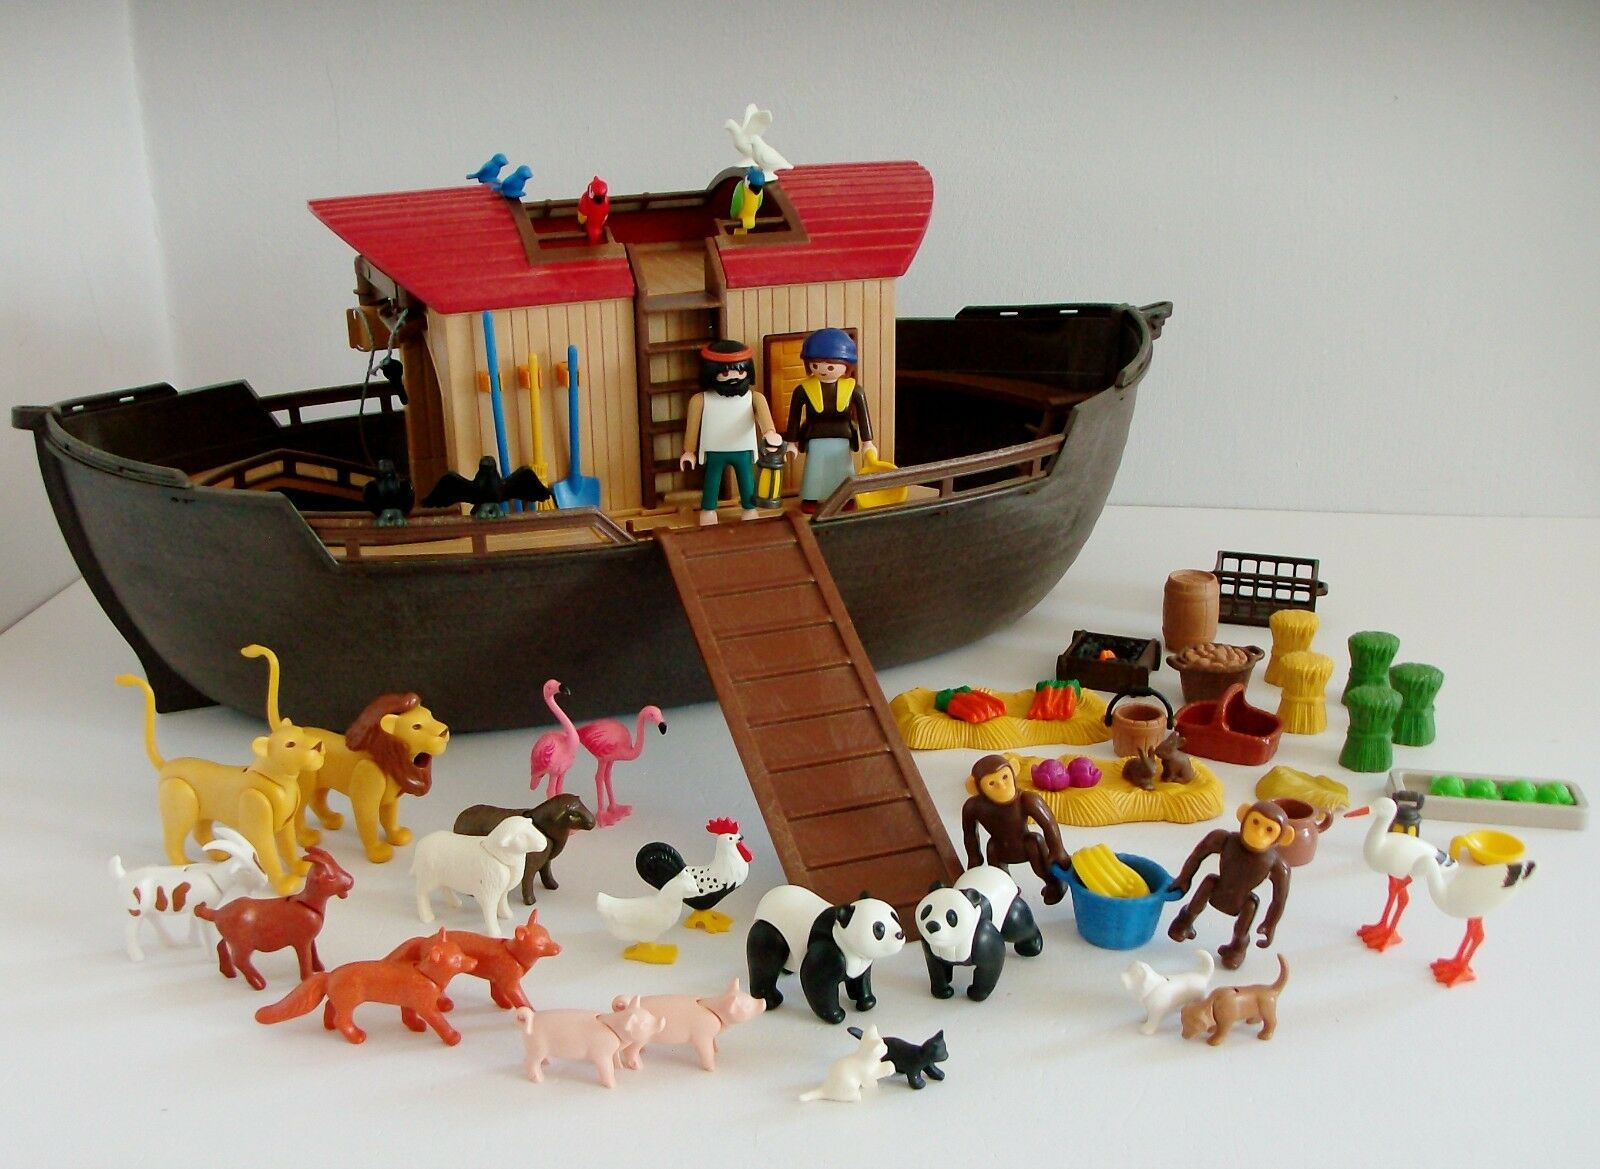 PLAYMOBIL Noah's Ark, animali, cifra  e accessori Bundle  design semplice e generoso